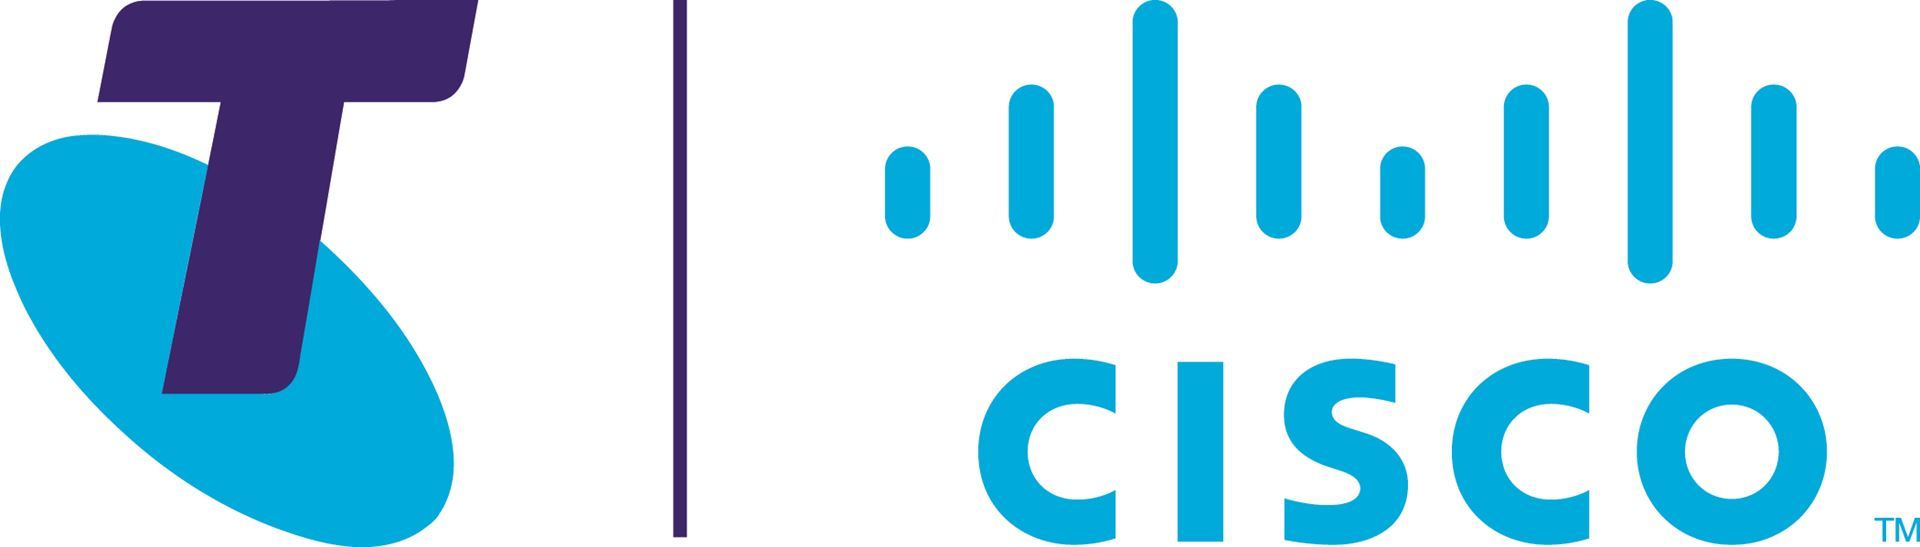 telstra_cisco_icon_xq_market_leadership